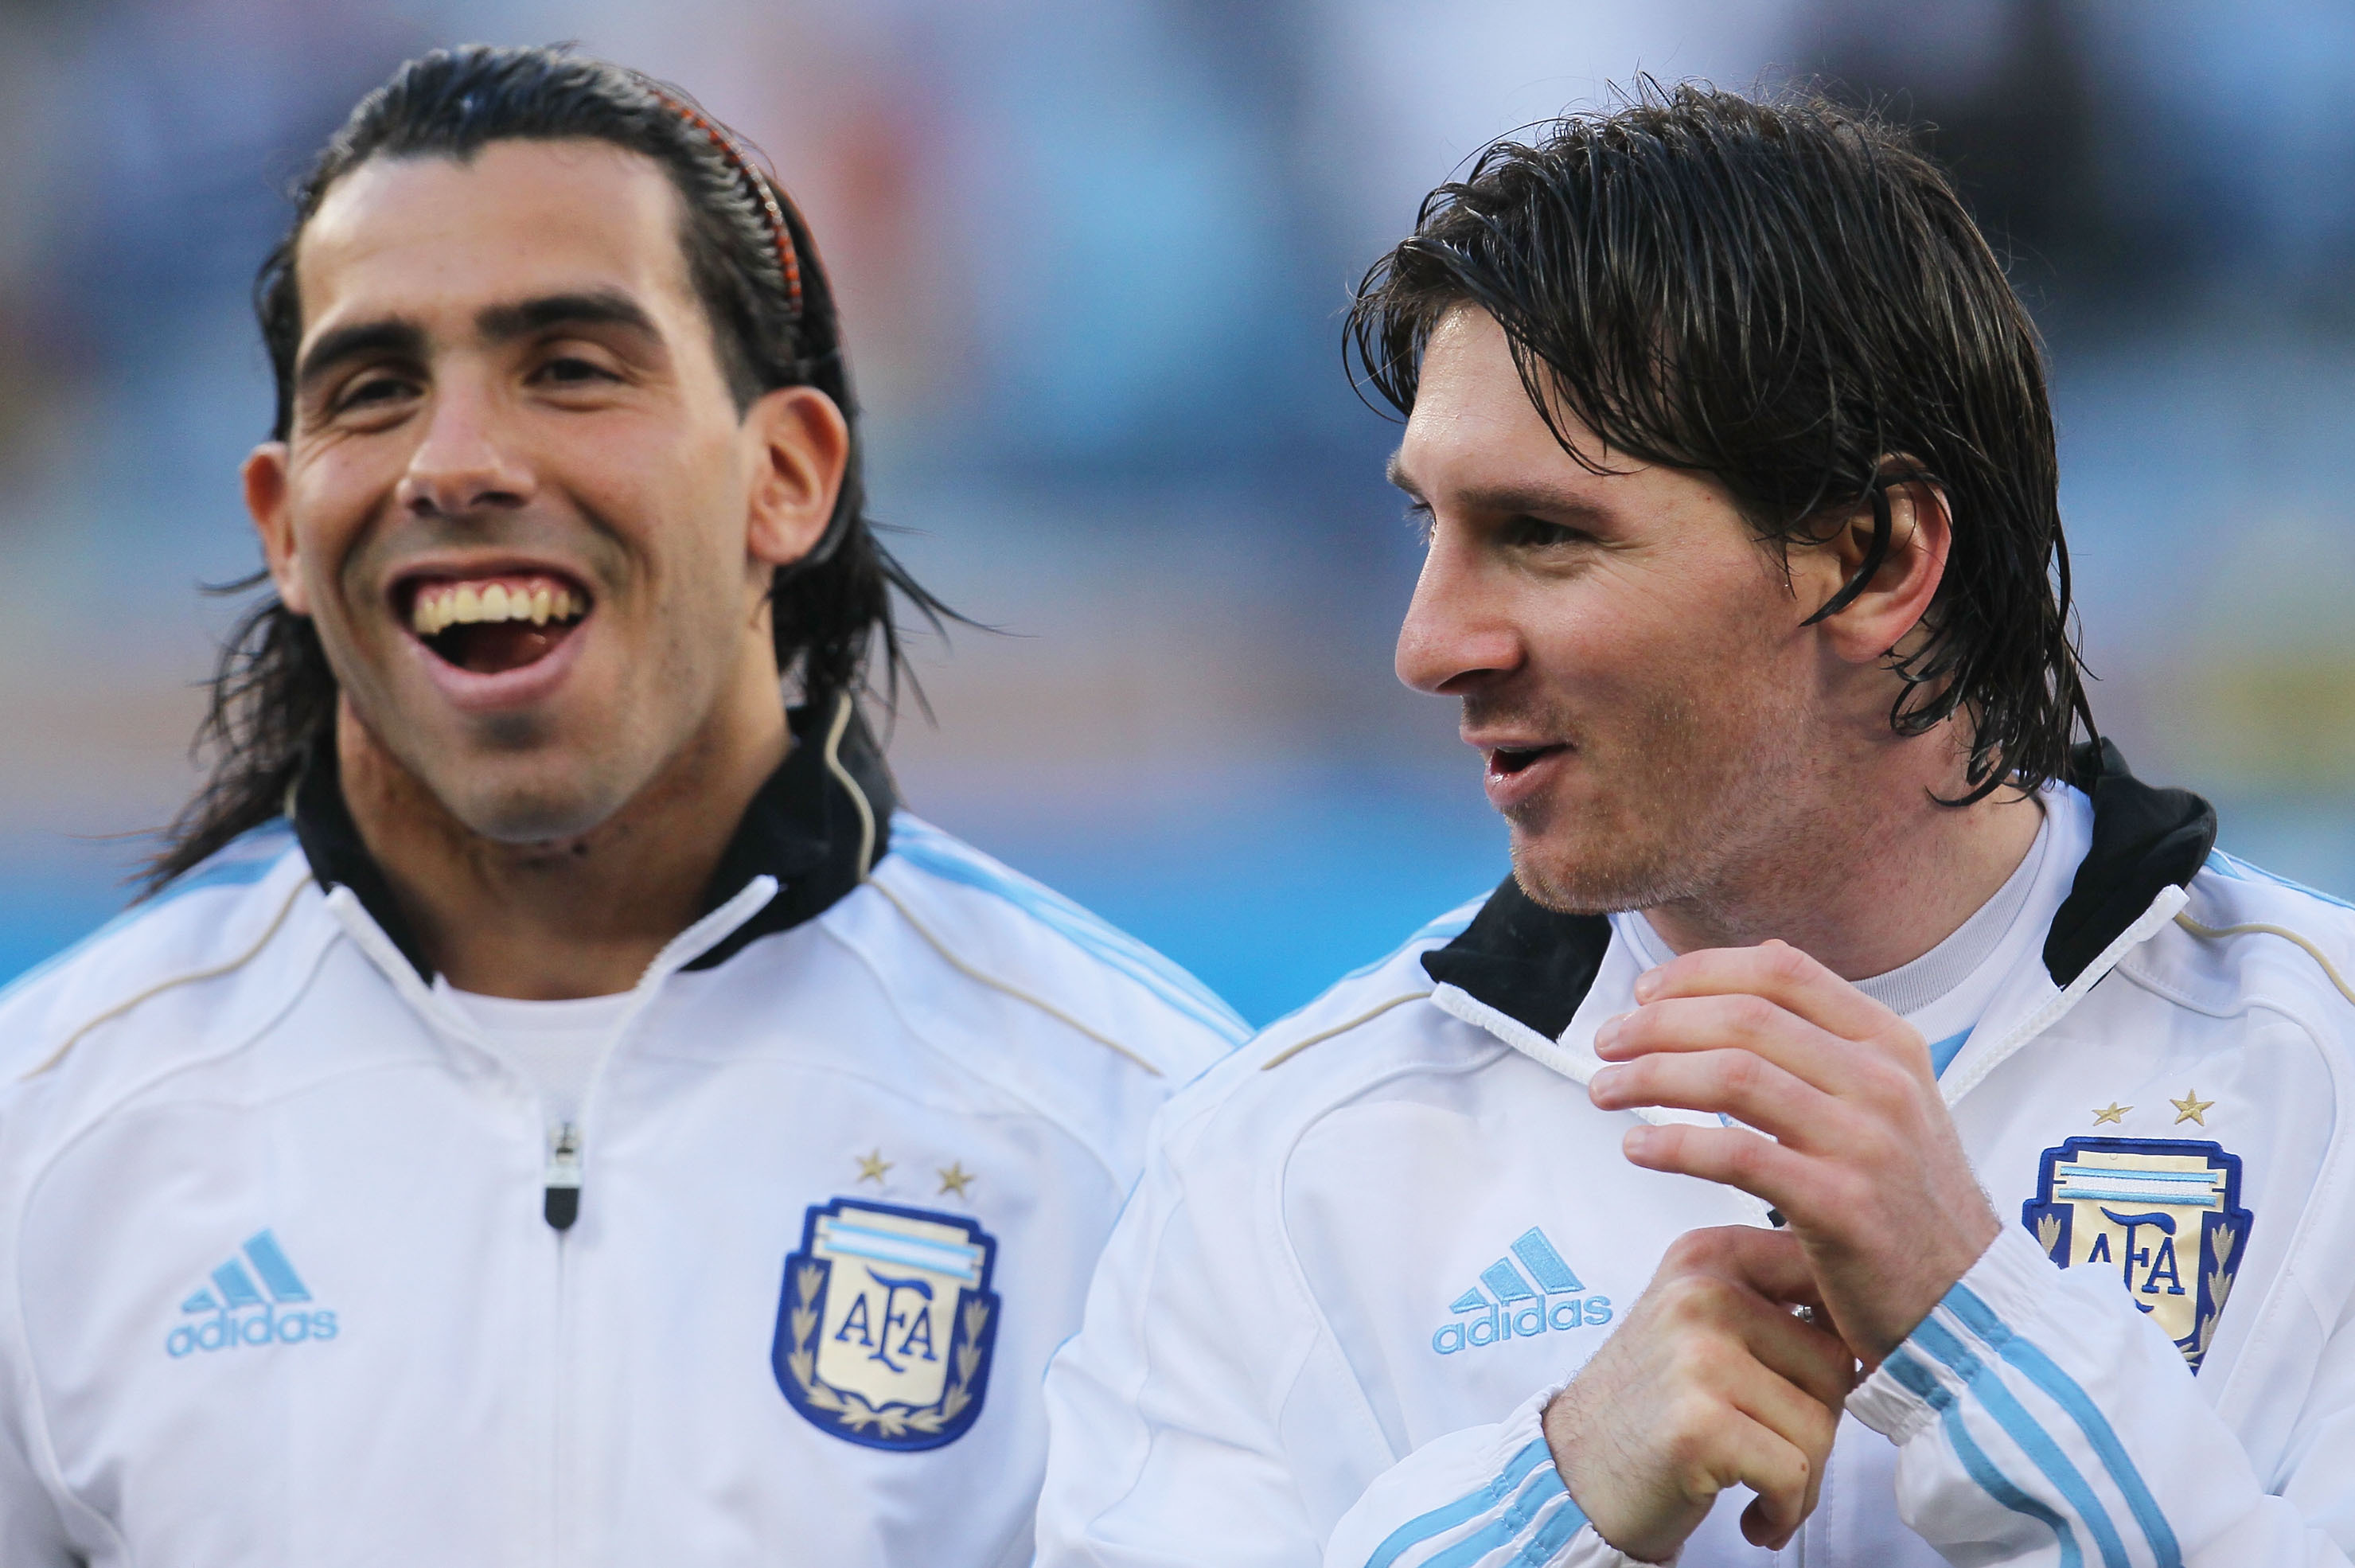 Carlos Tevez Reacts to Claims of Lionel Messi Fallout Ahead of World Cup |  Bleacher Report | Latest News, Videos and Highlights